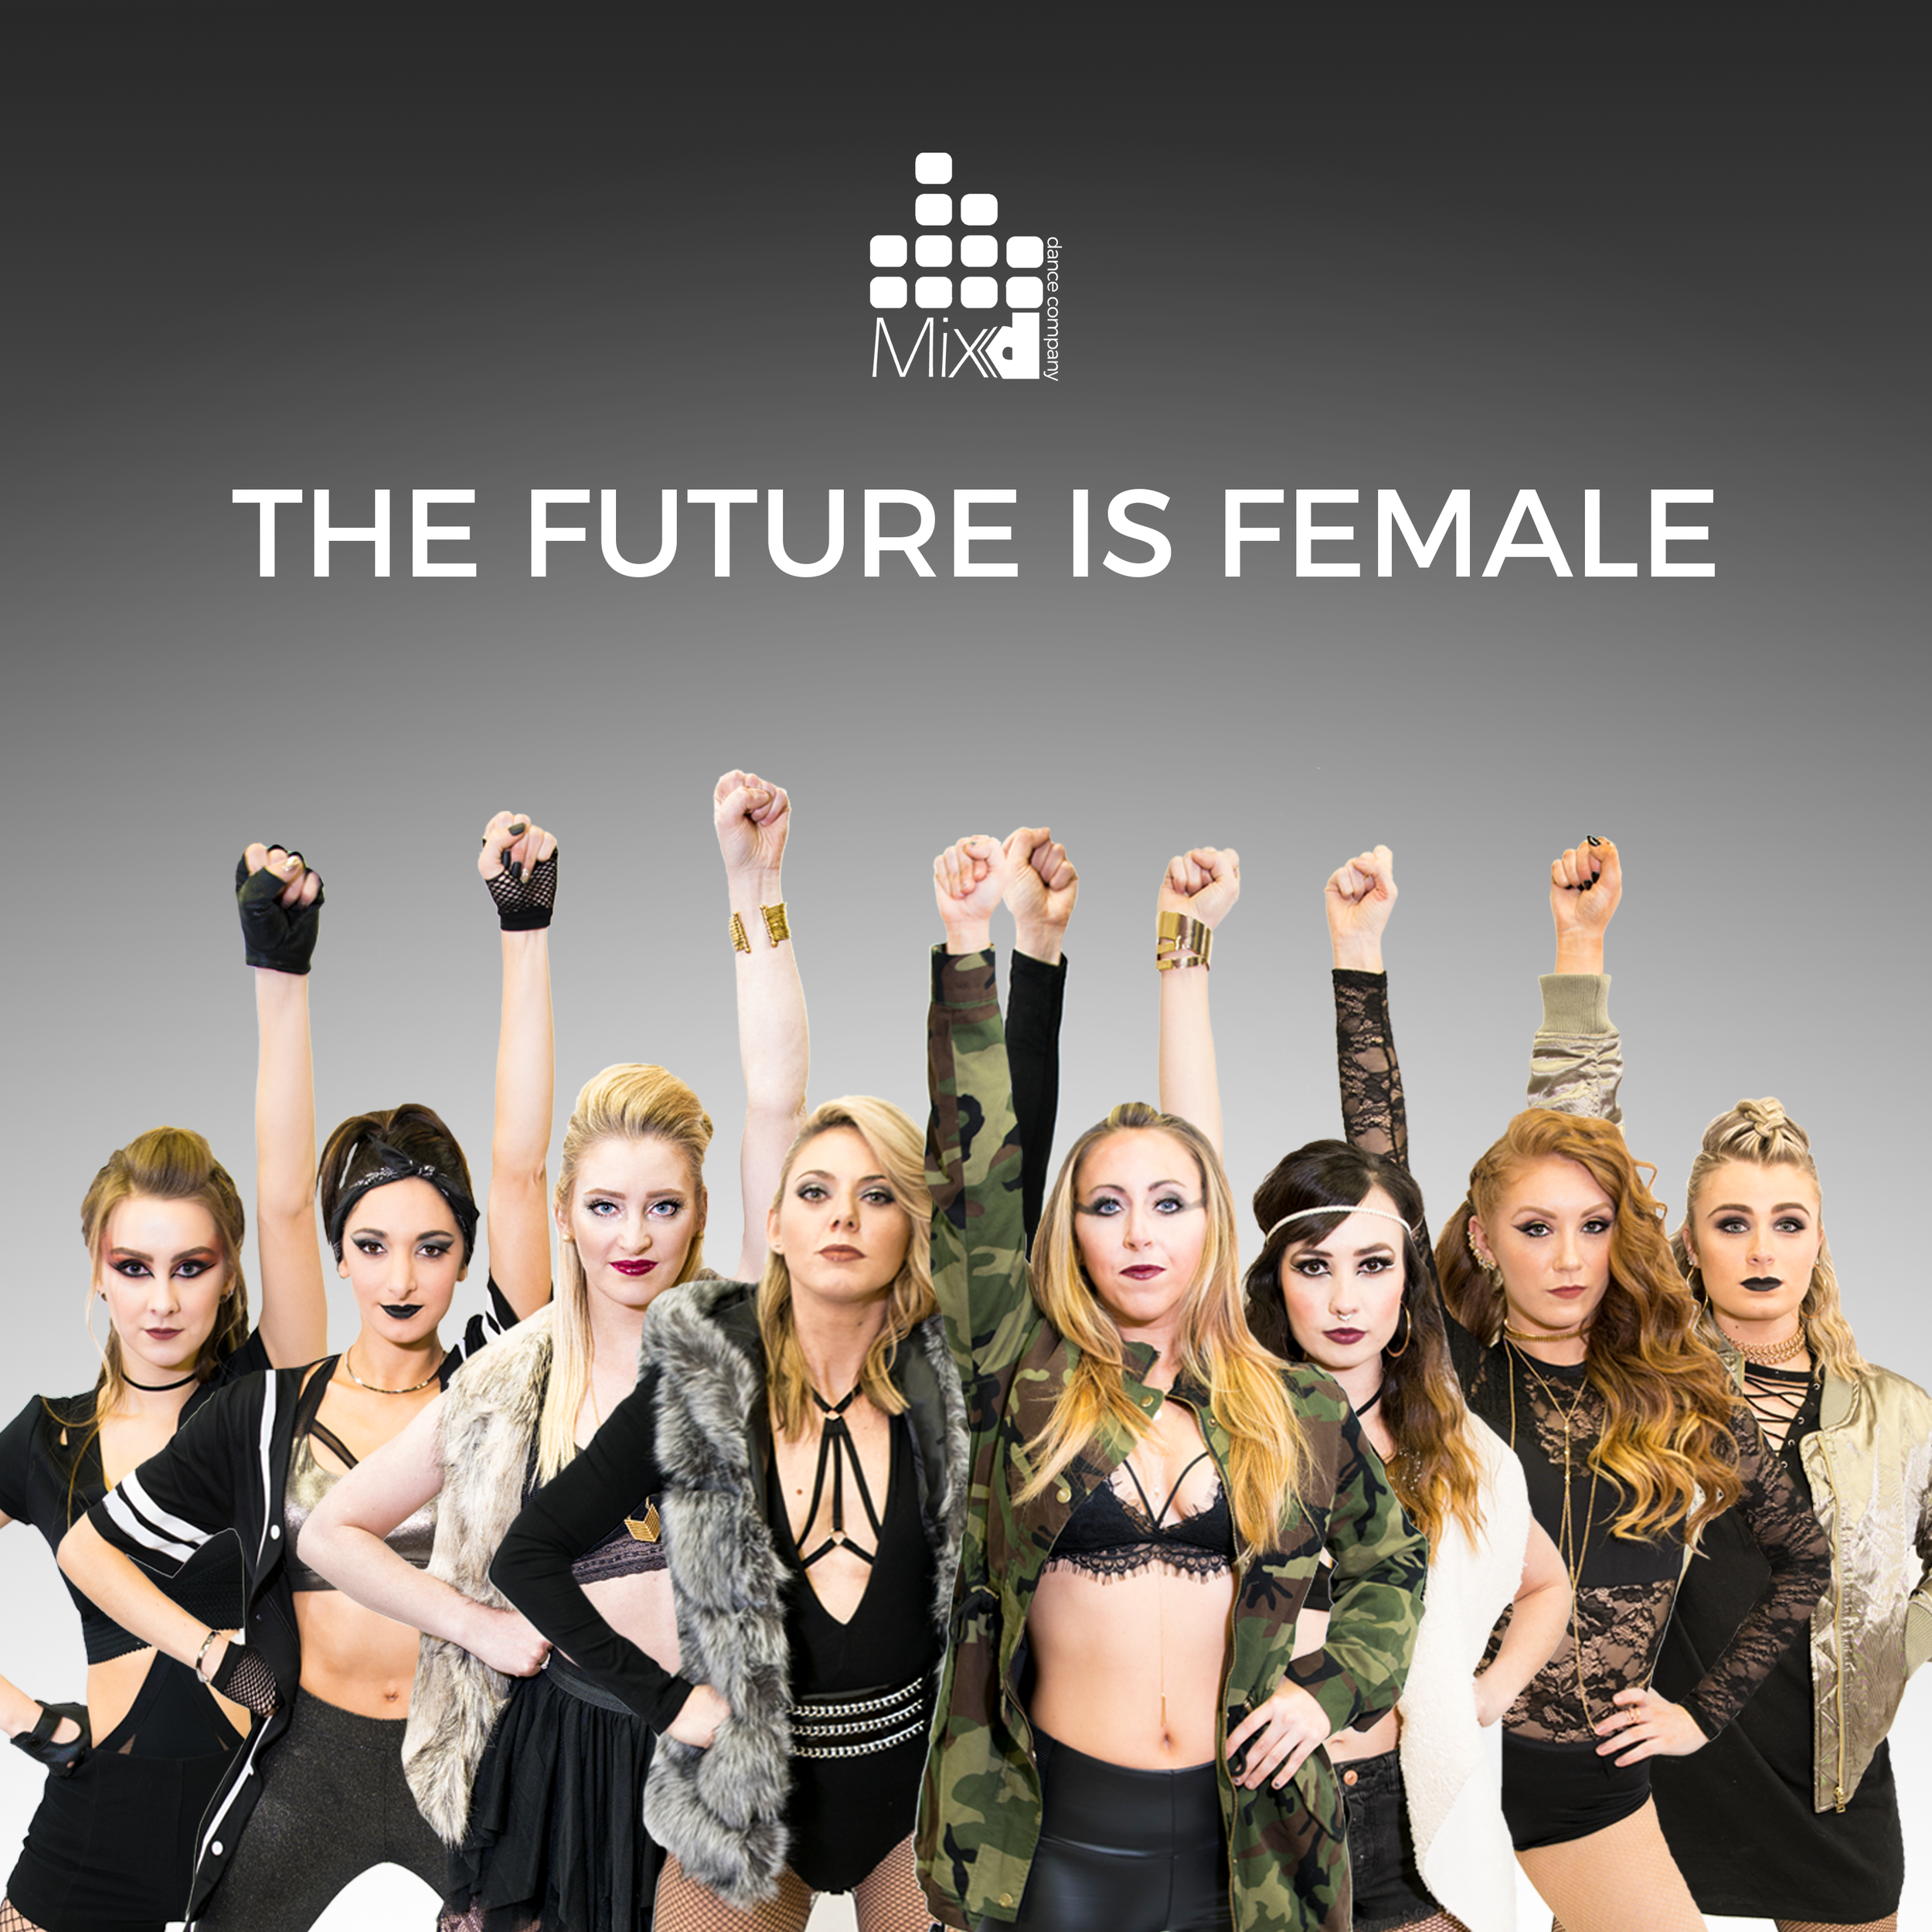 The Future is Female Mixd Dance Company